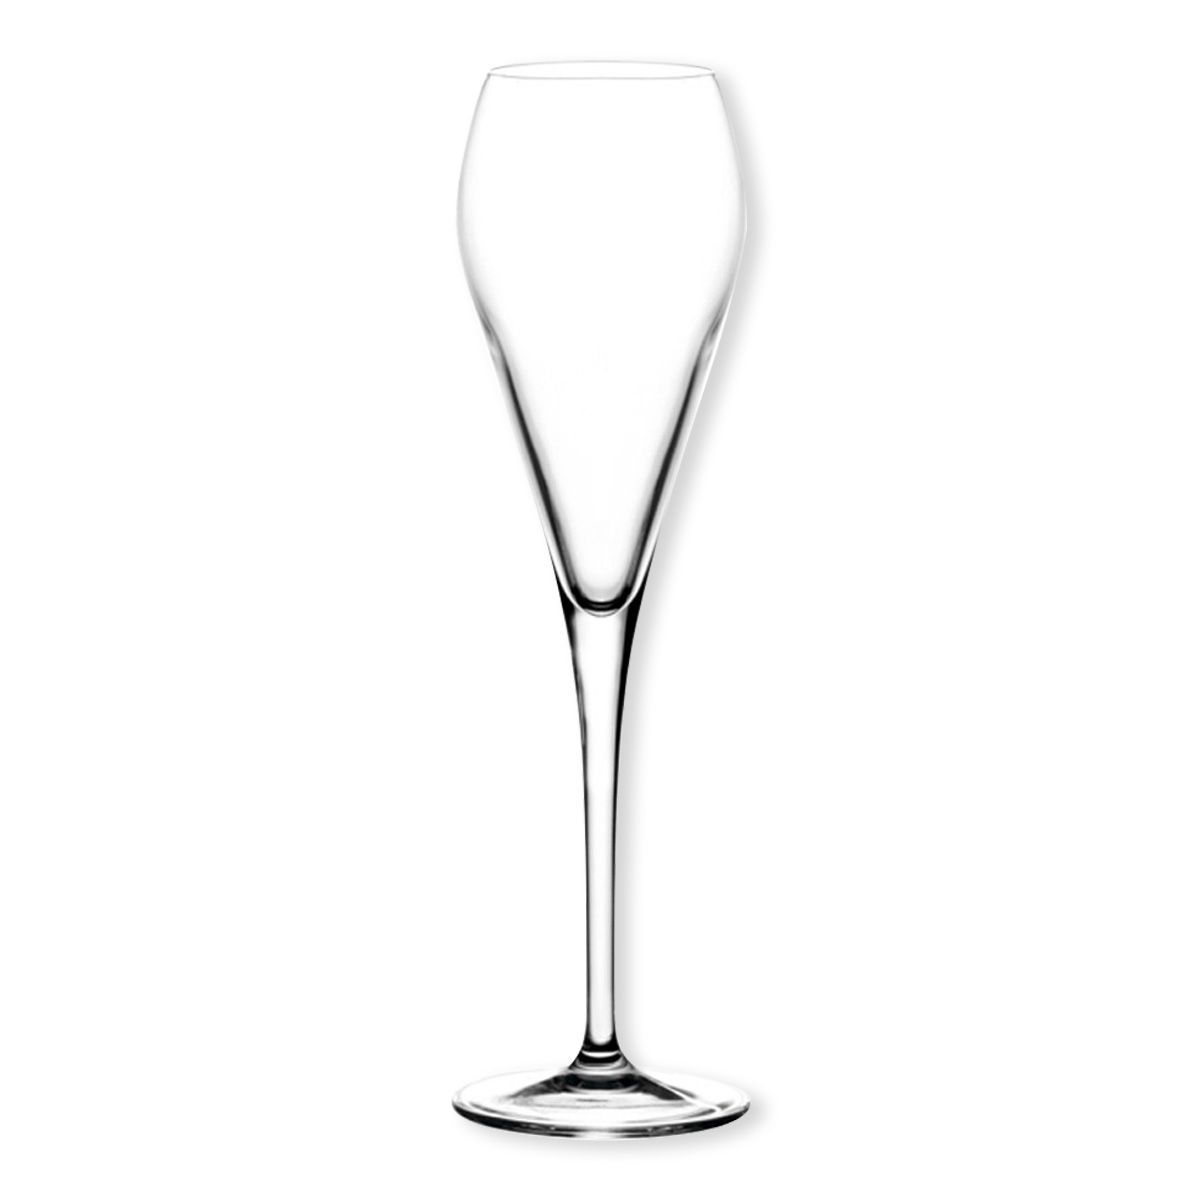 champagne flutes ikea images. Black Bedroom Furniture Sets. Home Design Ideas